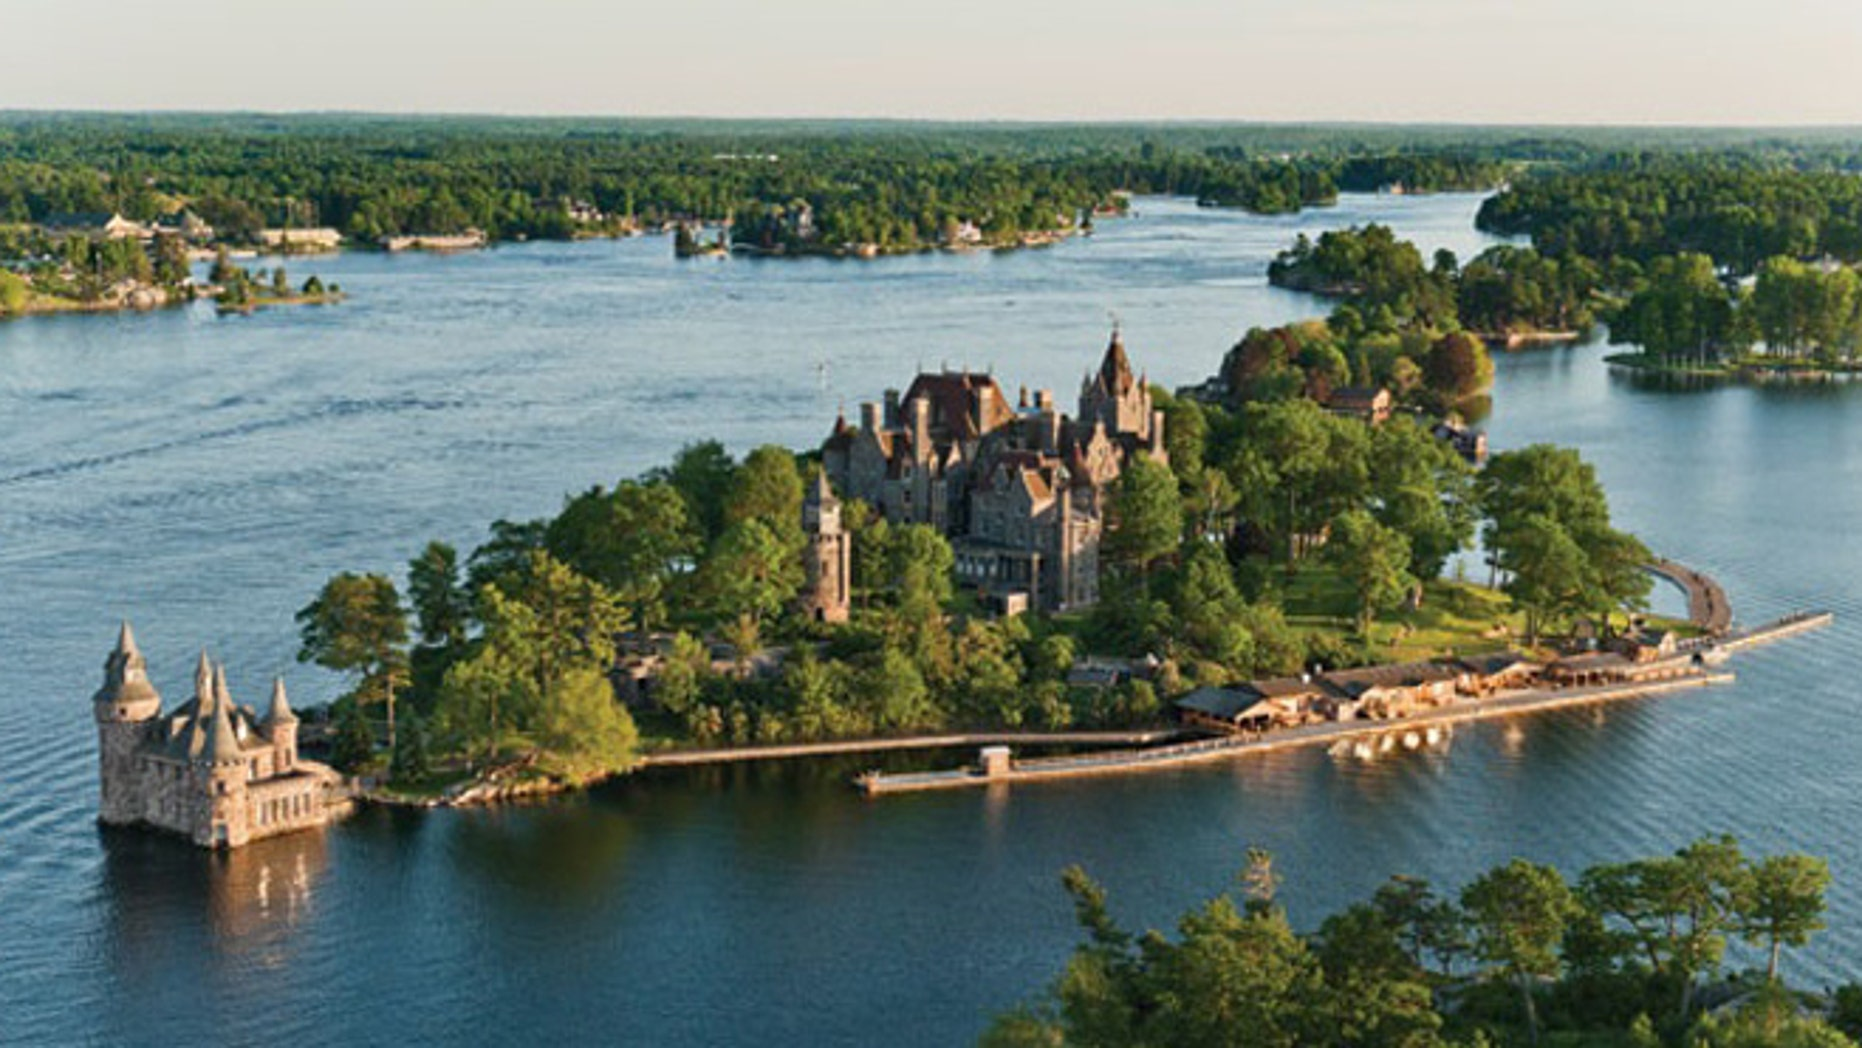 Boldt Castle is located on Heart Island in New York's Thousand Islands.